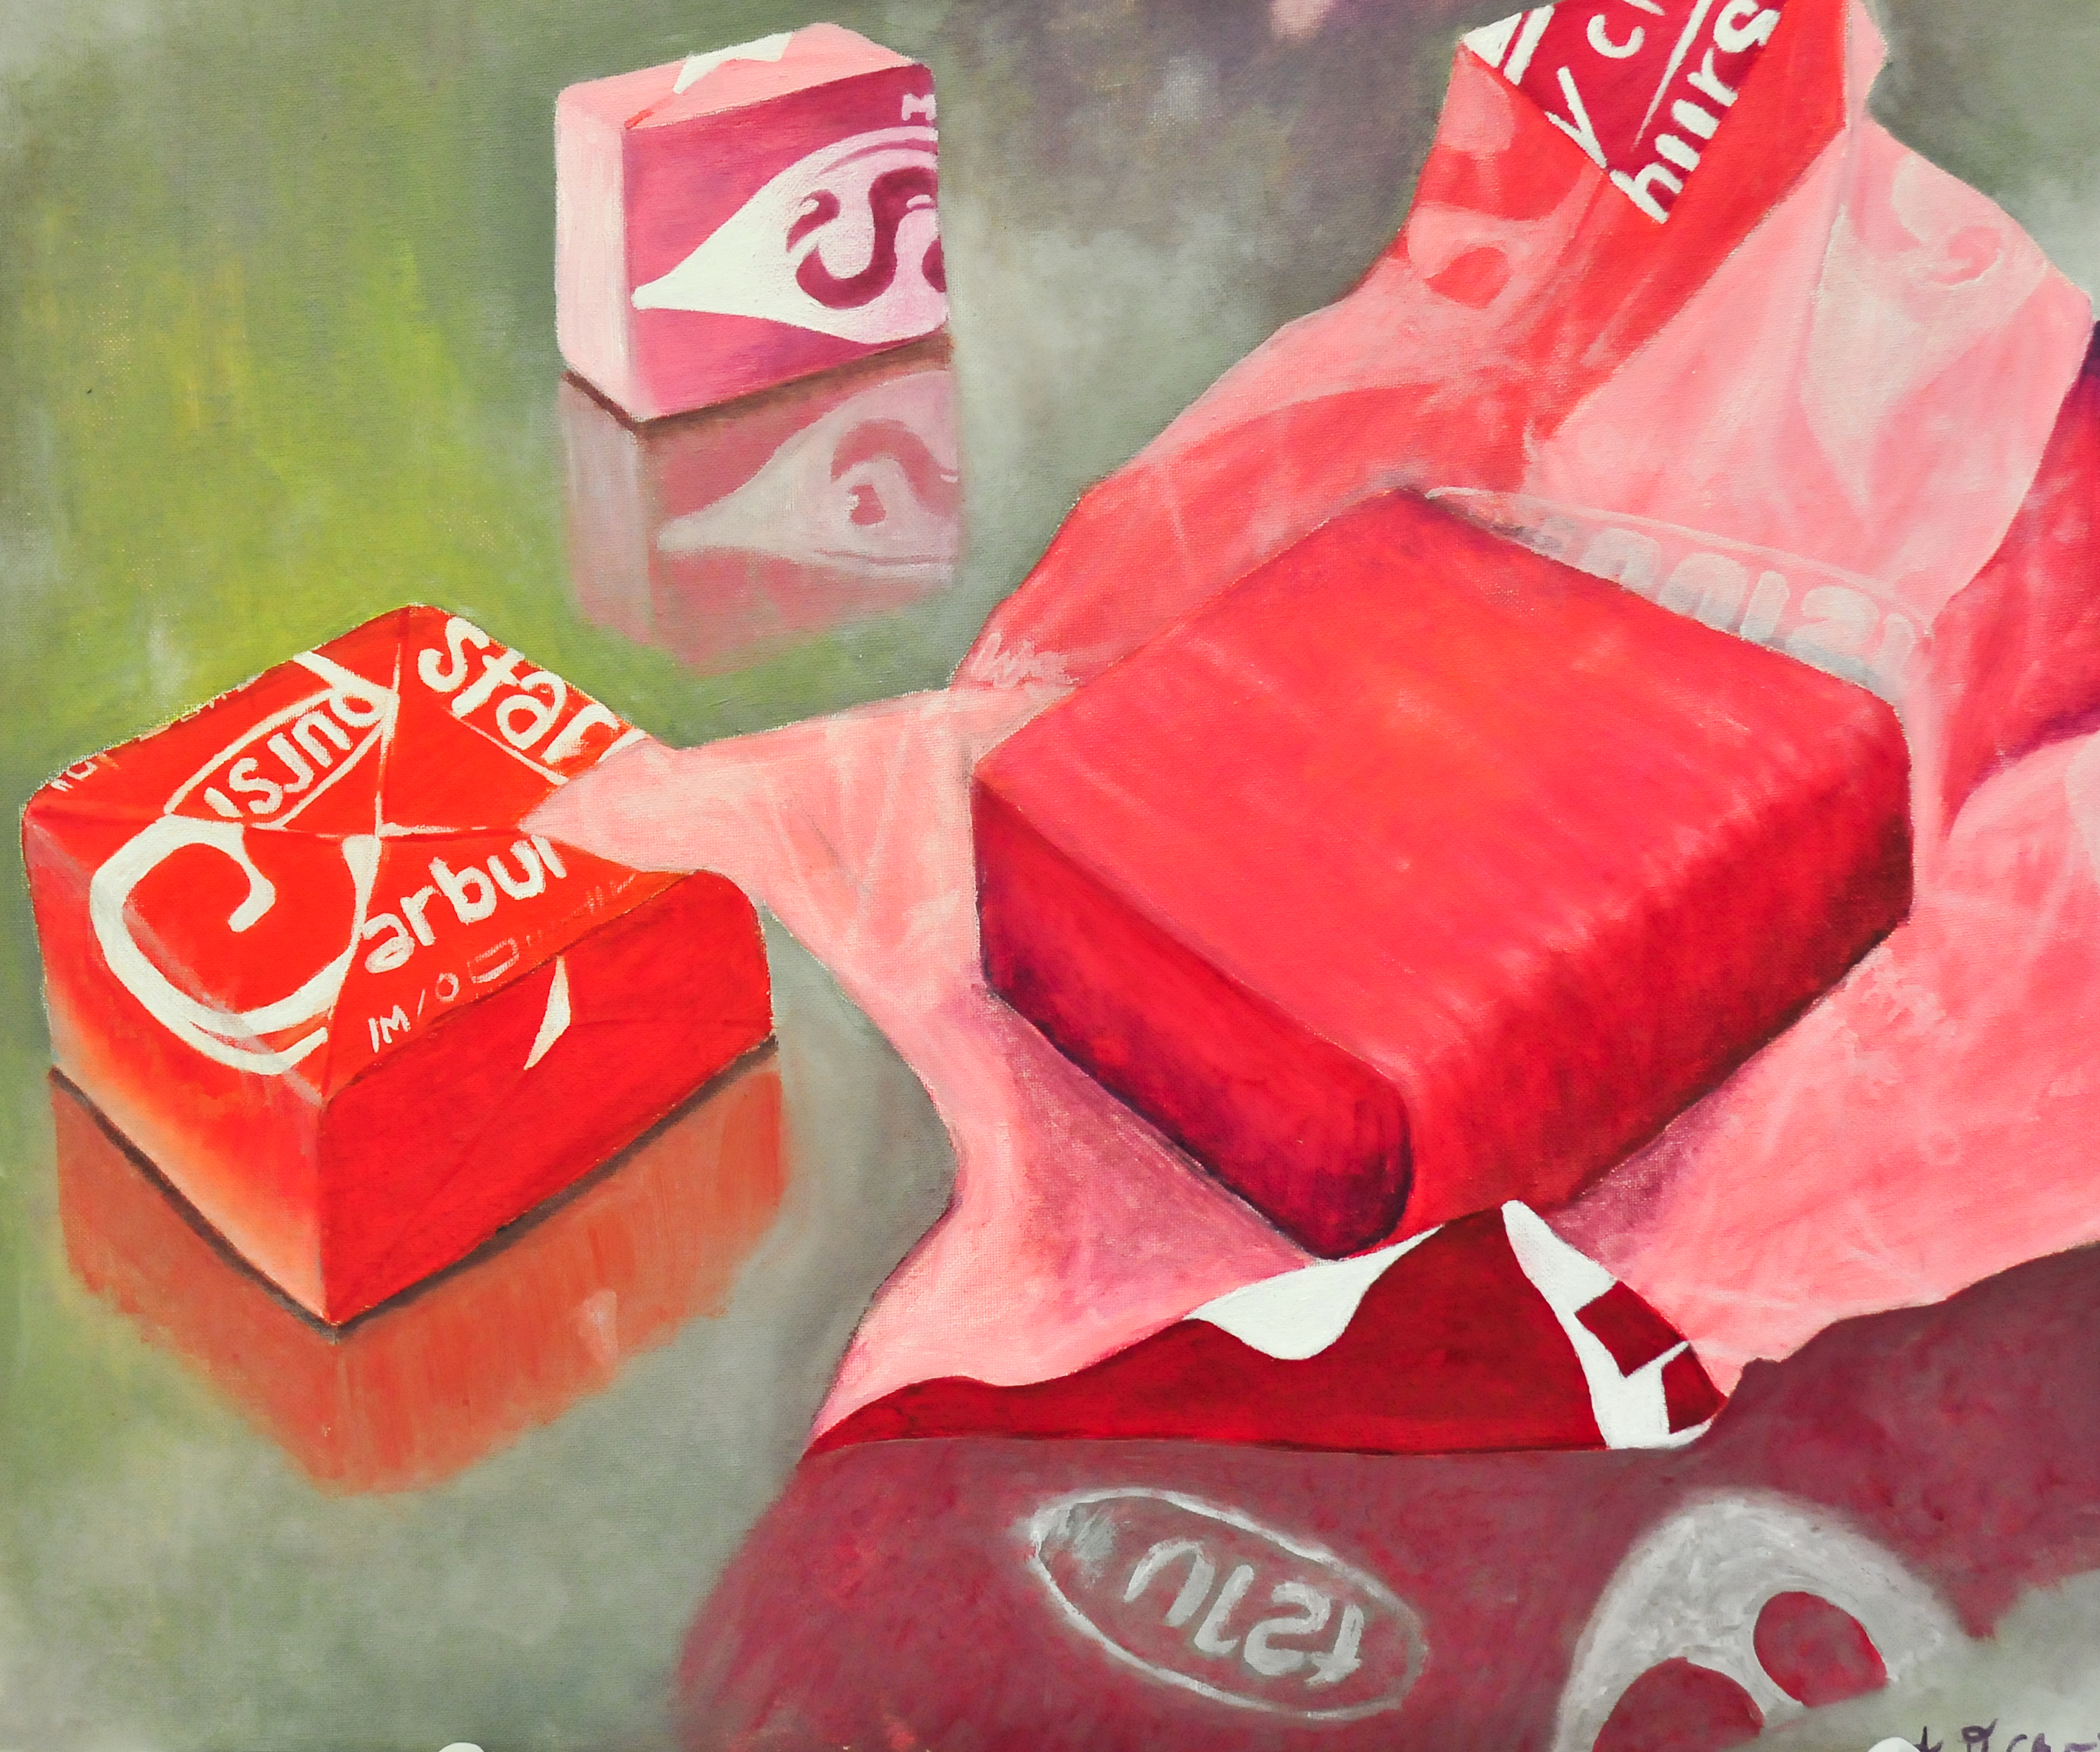 Drawn still life candy Painting Plan still painting Candy